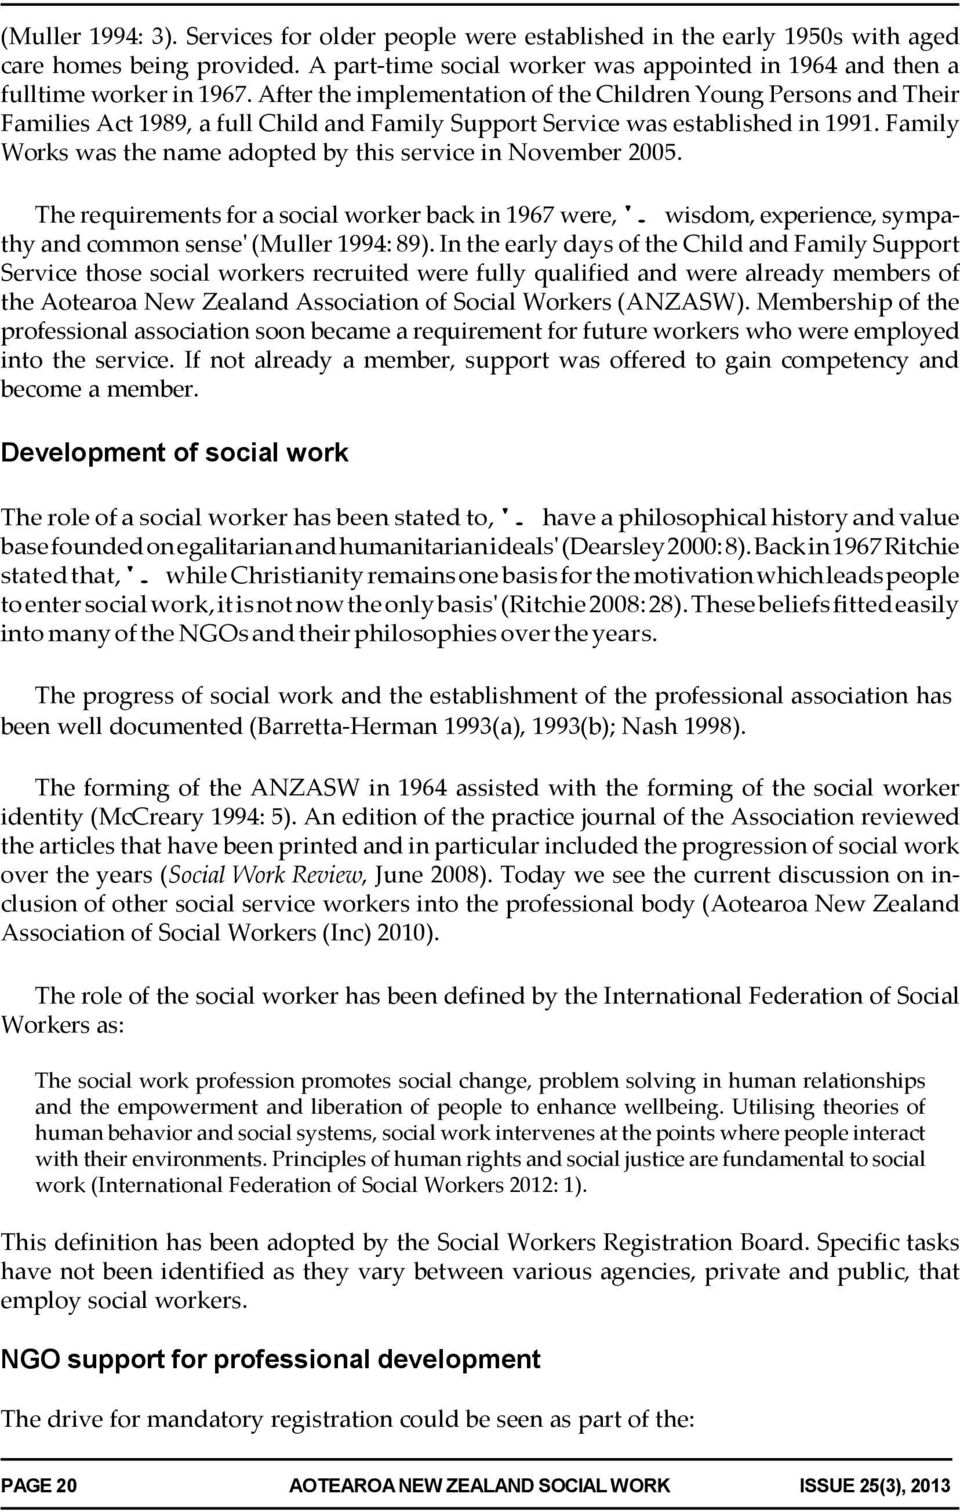 Family Works was the name adopted by this service in November 2005. The requirements for a social worker back in 1967 were, '. wisdom, experience, sympathy and common sense' (Muller 1994: 89).